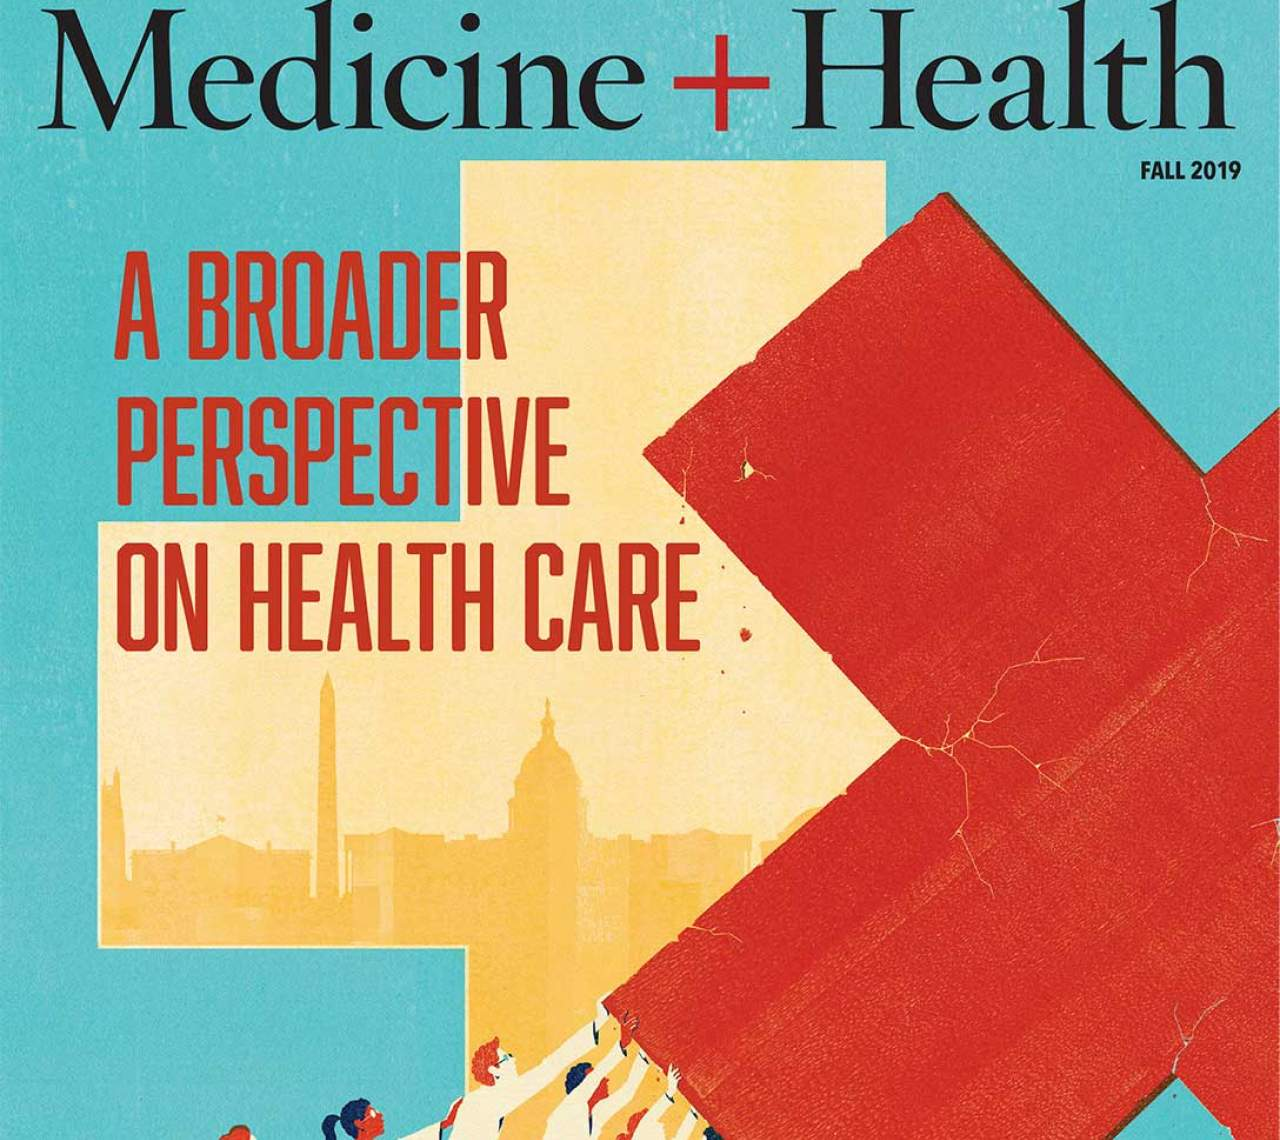 Medicine and Health Fall 2019 cover edition